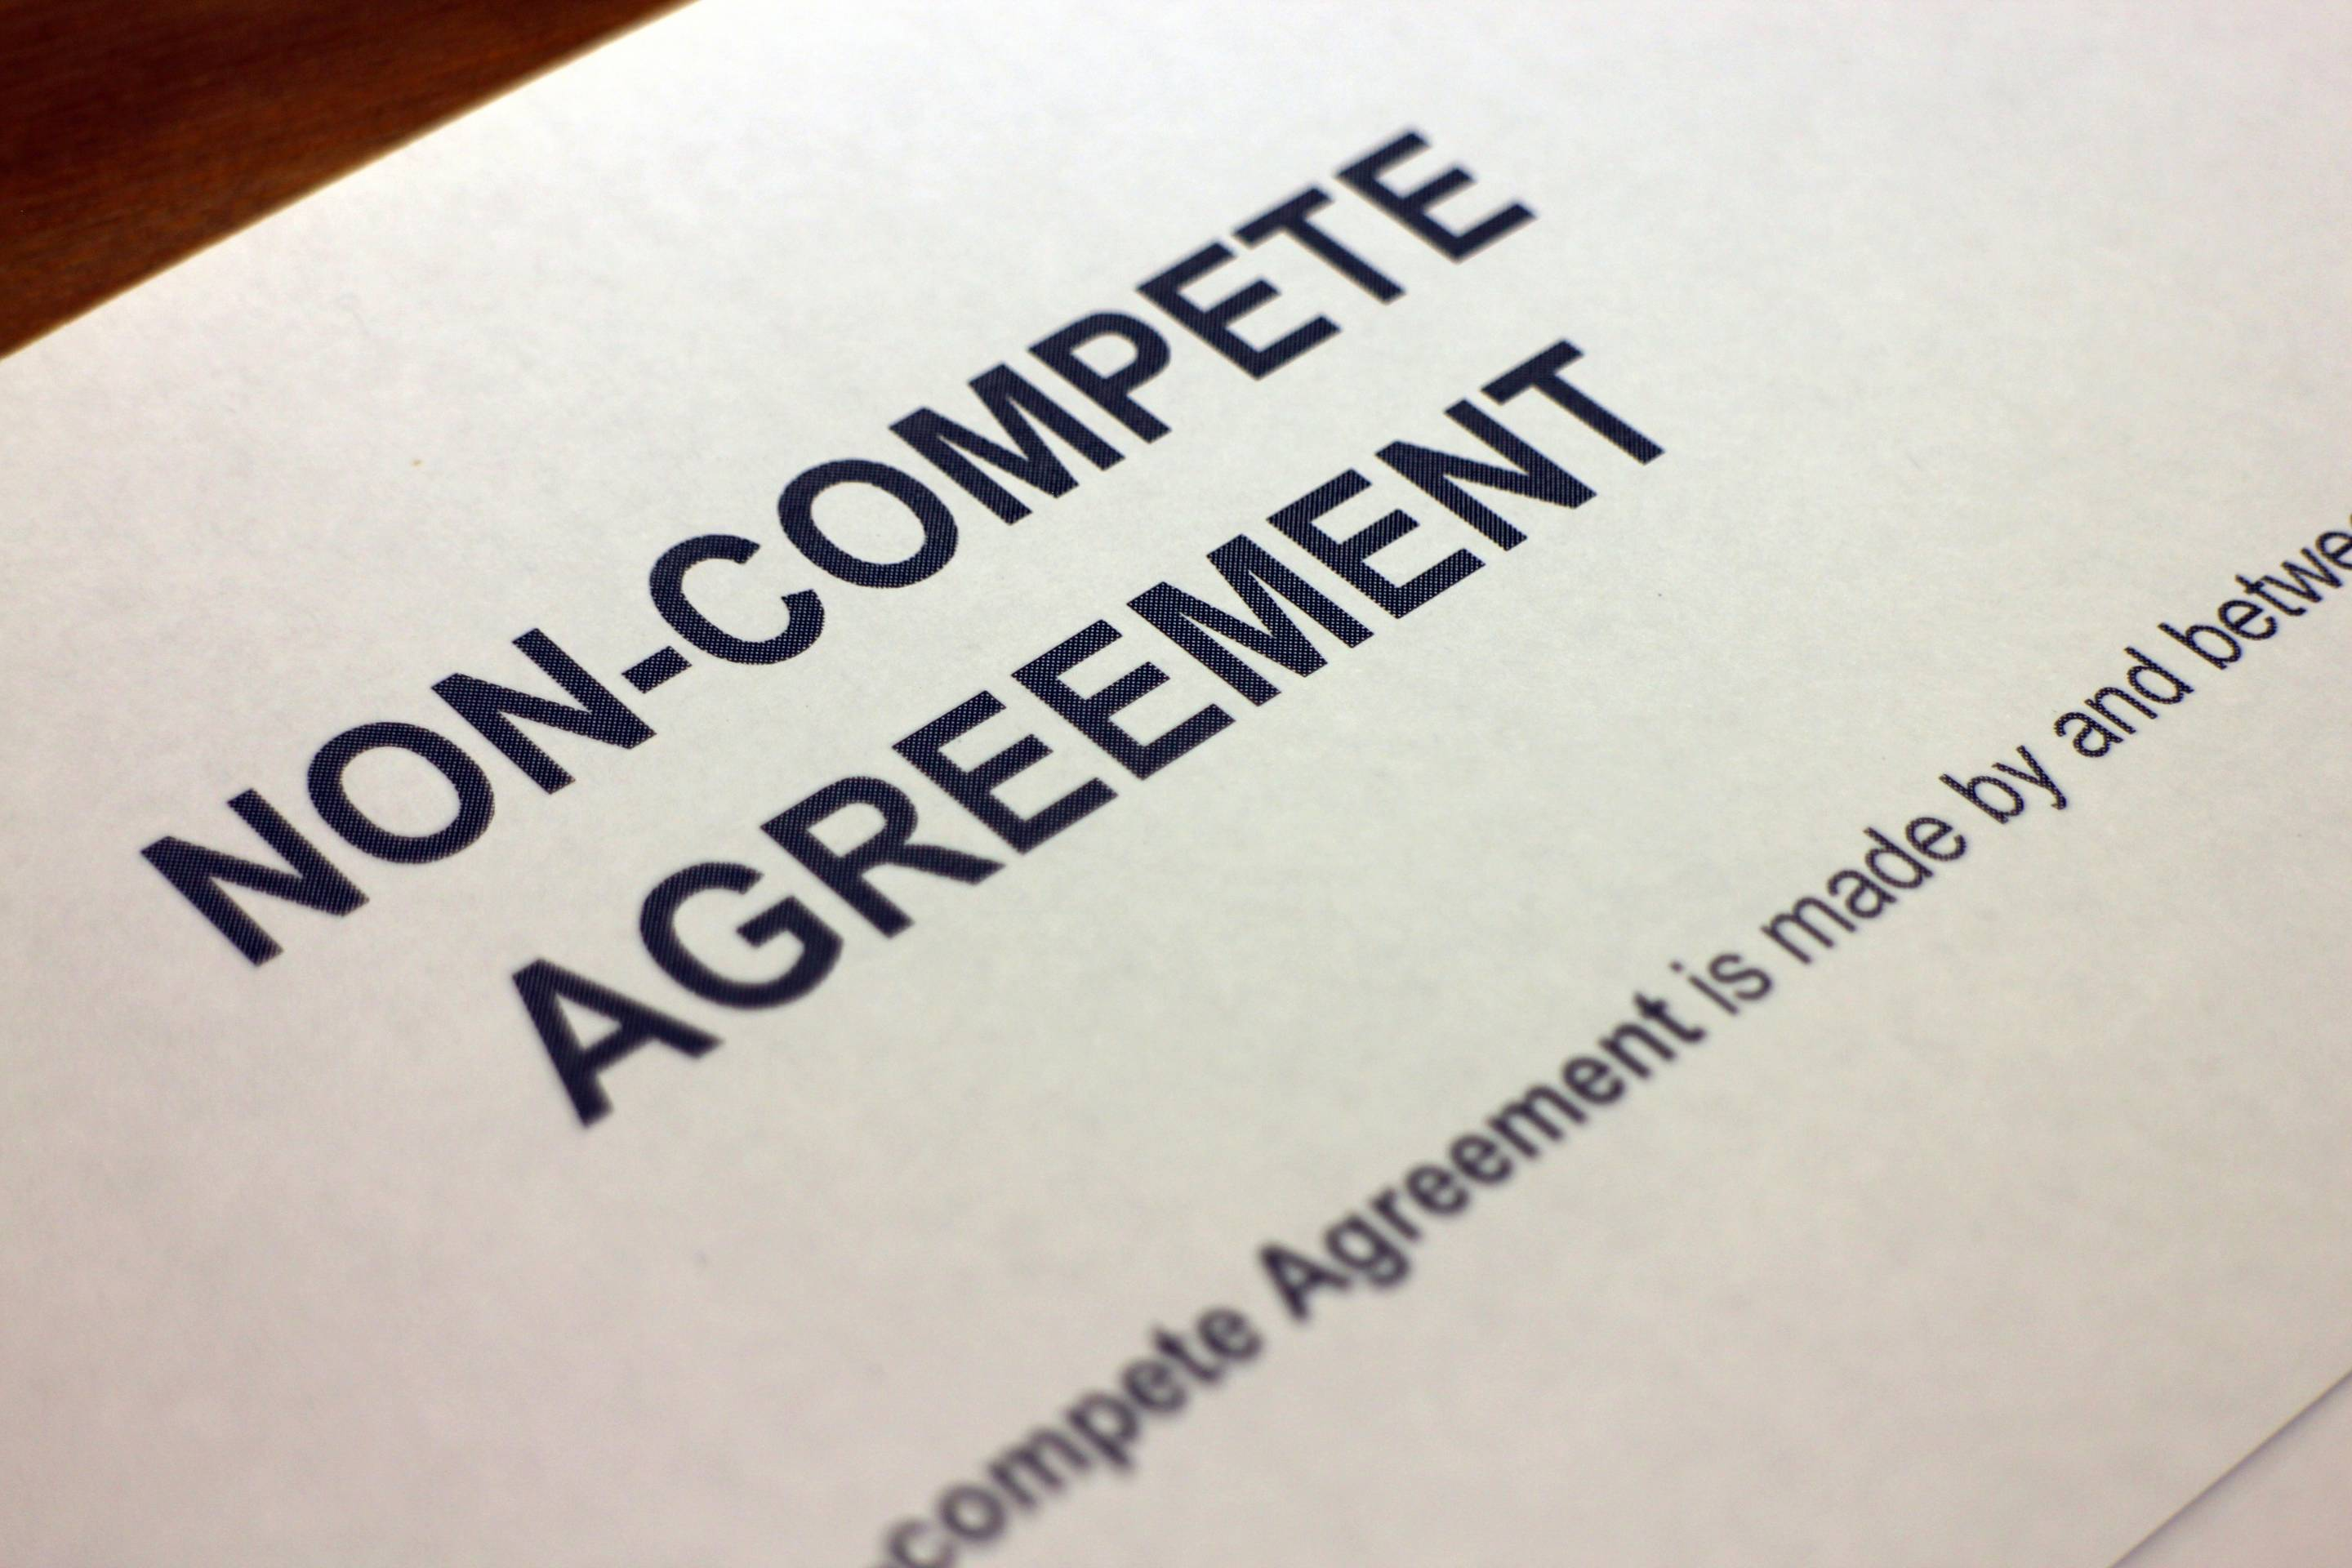 A noncompete agreement.